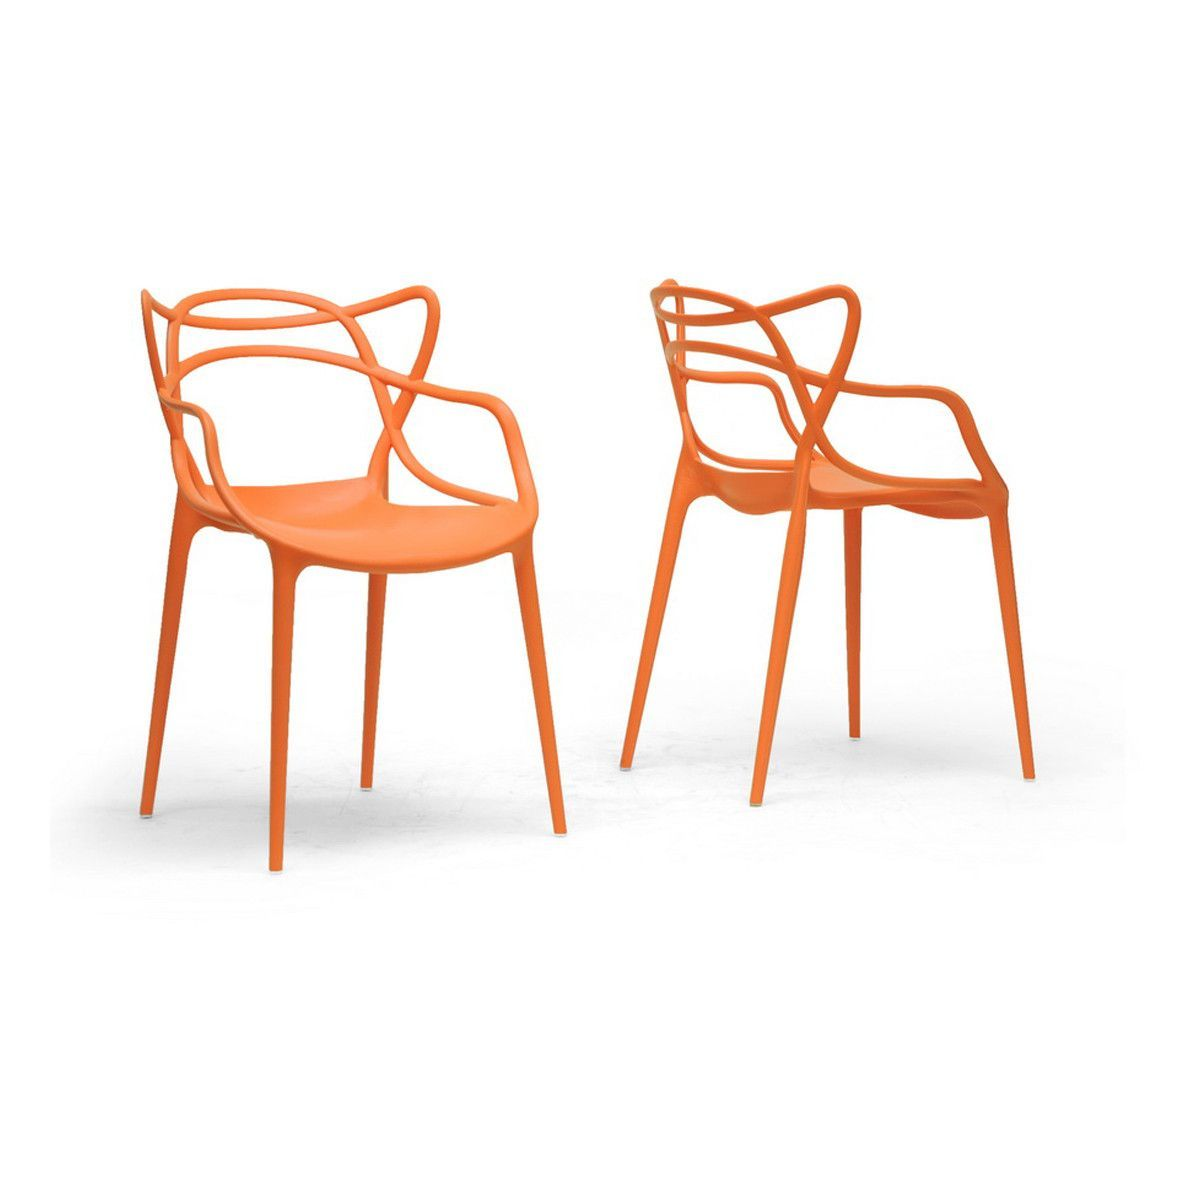 Aeriss Stackable Modern Dining Chairs, Set of 2